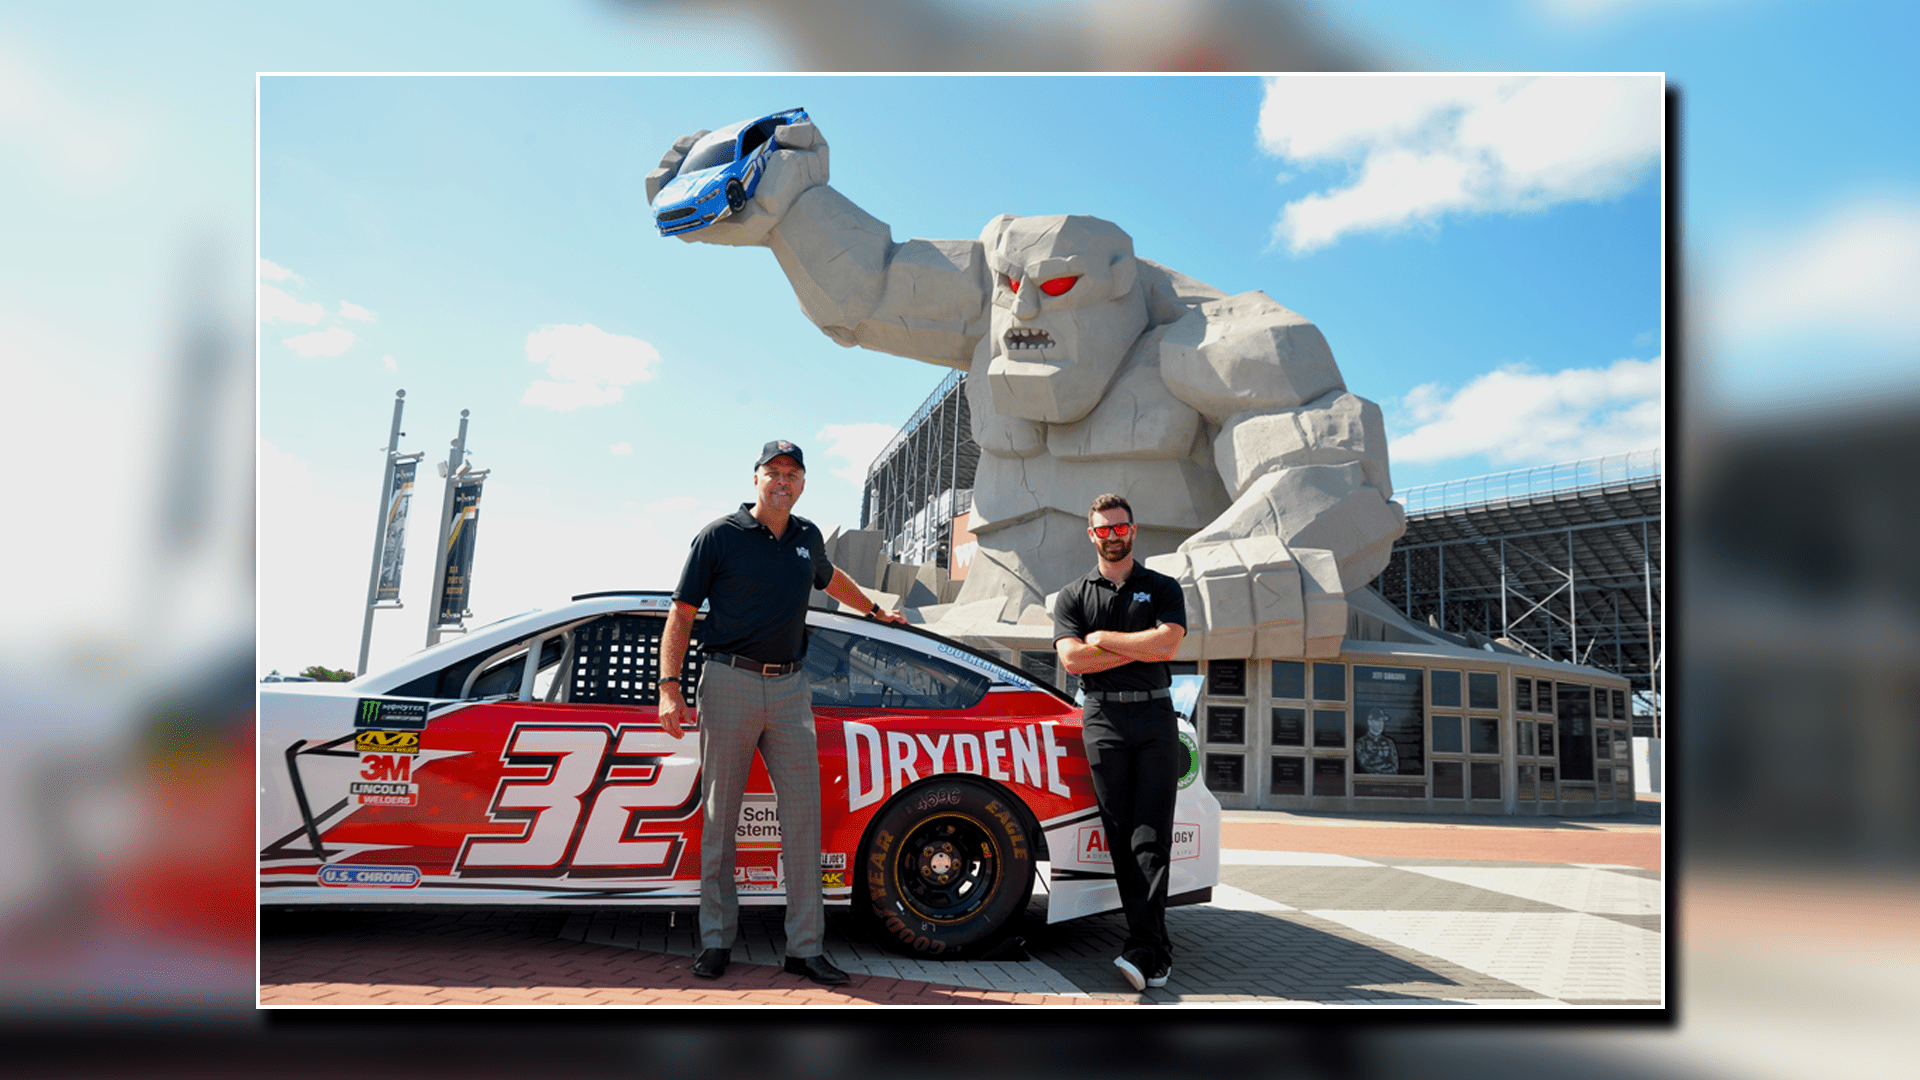 Jonestown's Drydene Performance Products will sponsor NASCAR Cup Series race in Dover – LebTown